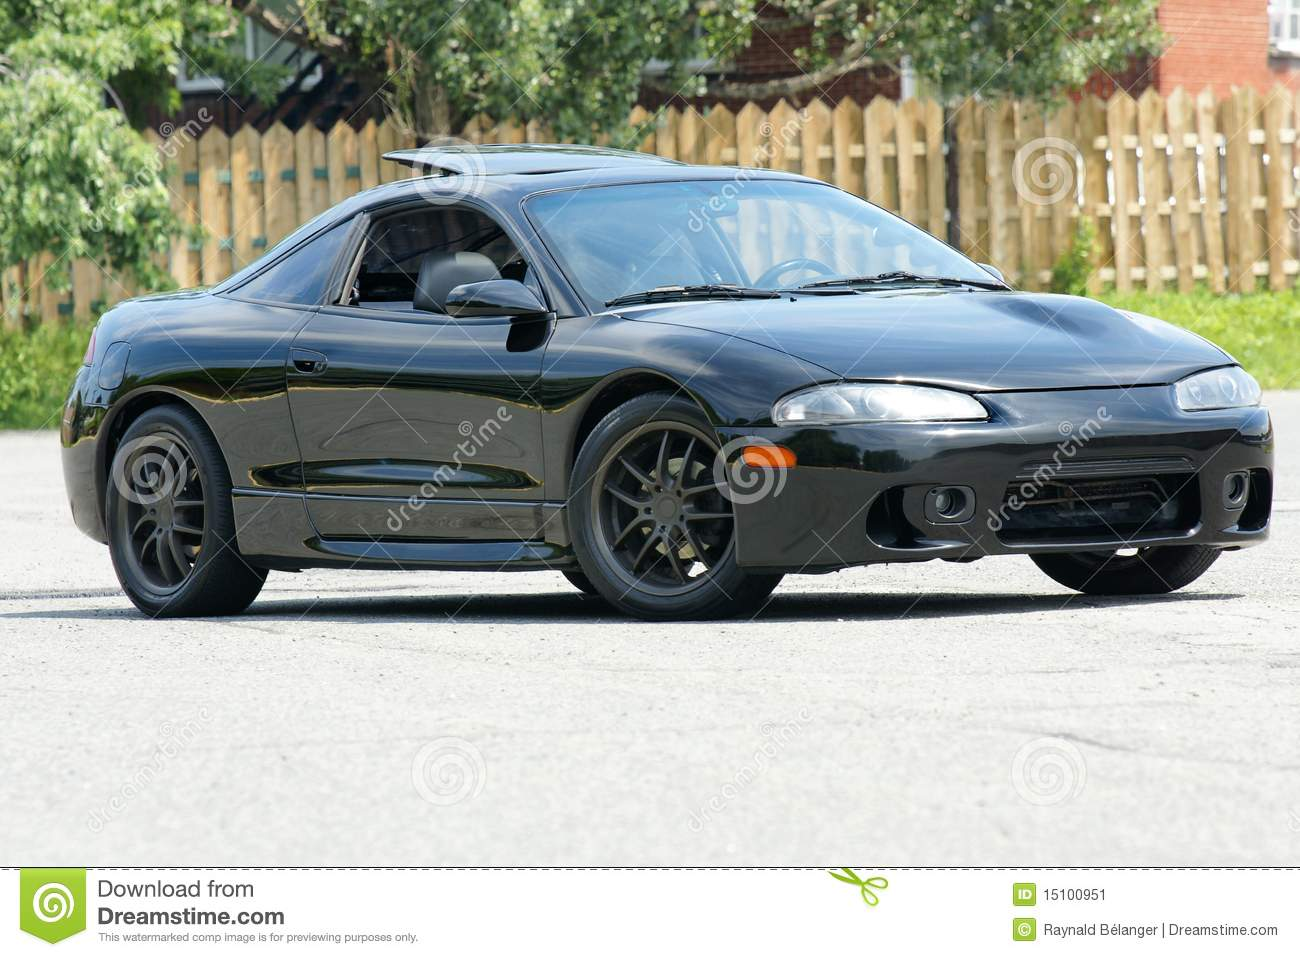 Mitsubishi Eclipse Stock Image Image Of Four City Speed 15100951